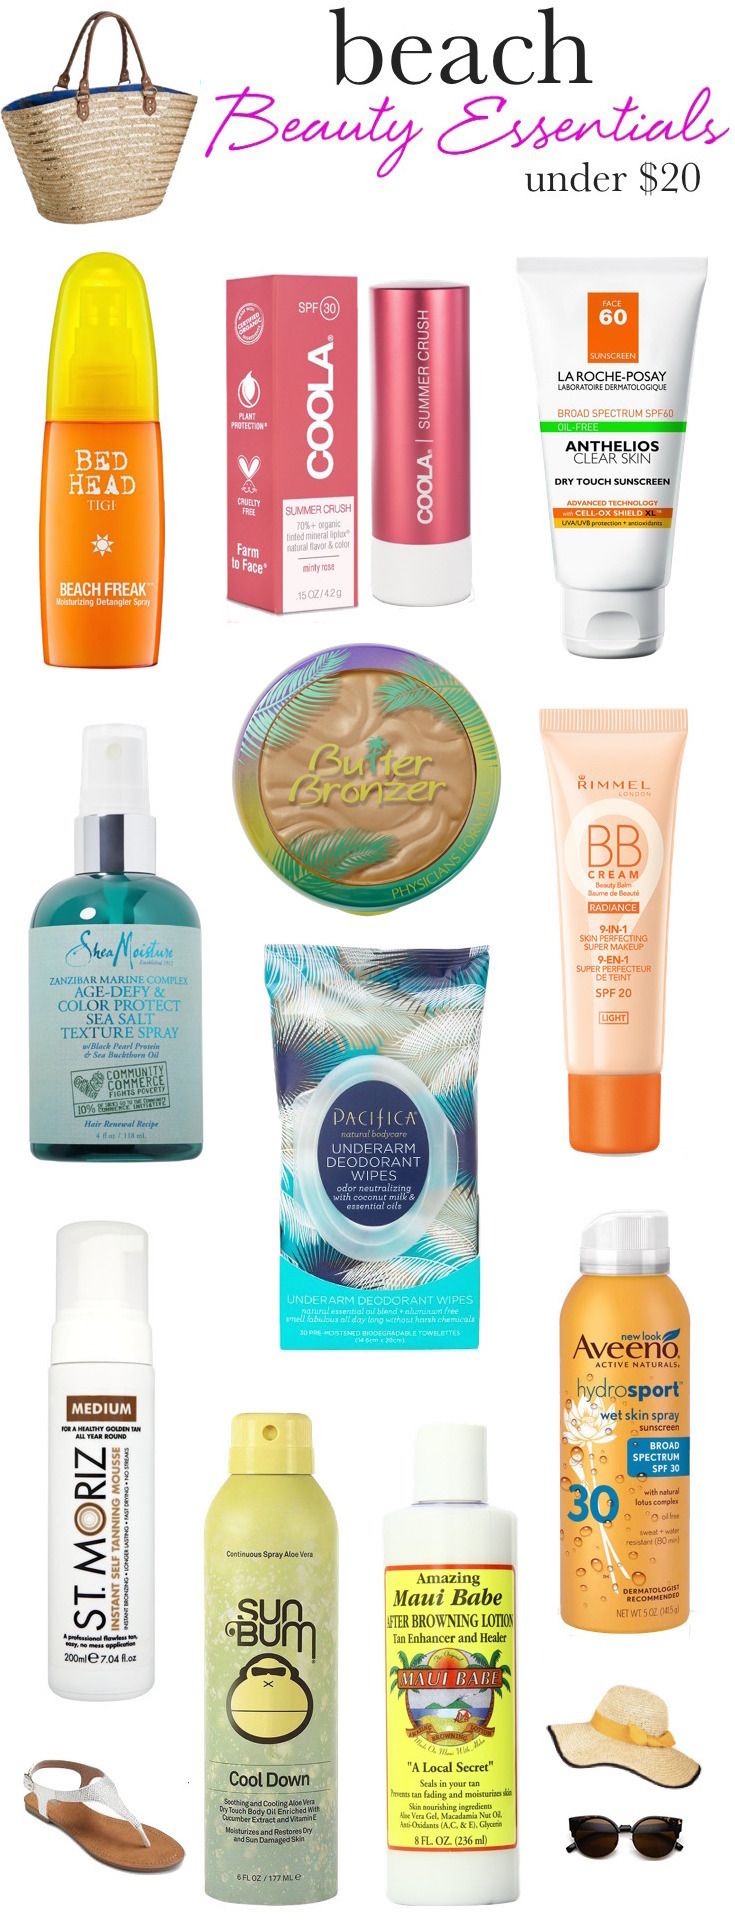 Whether you'll be lounging poolside or hitting the beach, throw these sweat-proof, frizz-busting summer beauty essentials in your tote to keep your skin, hair and makeup in top shape...and they're all under $20!